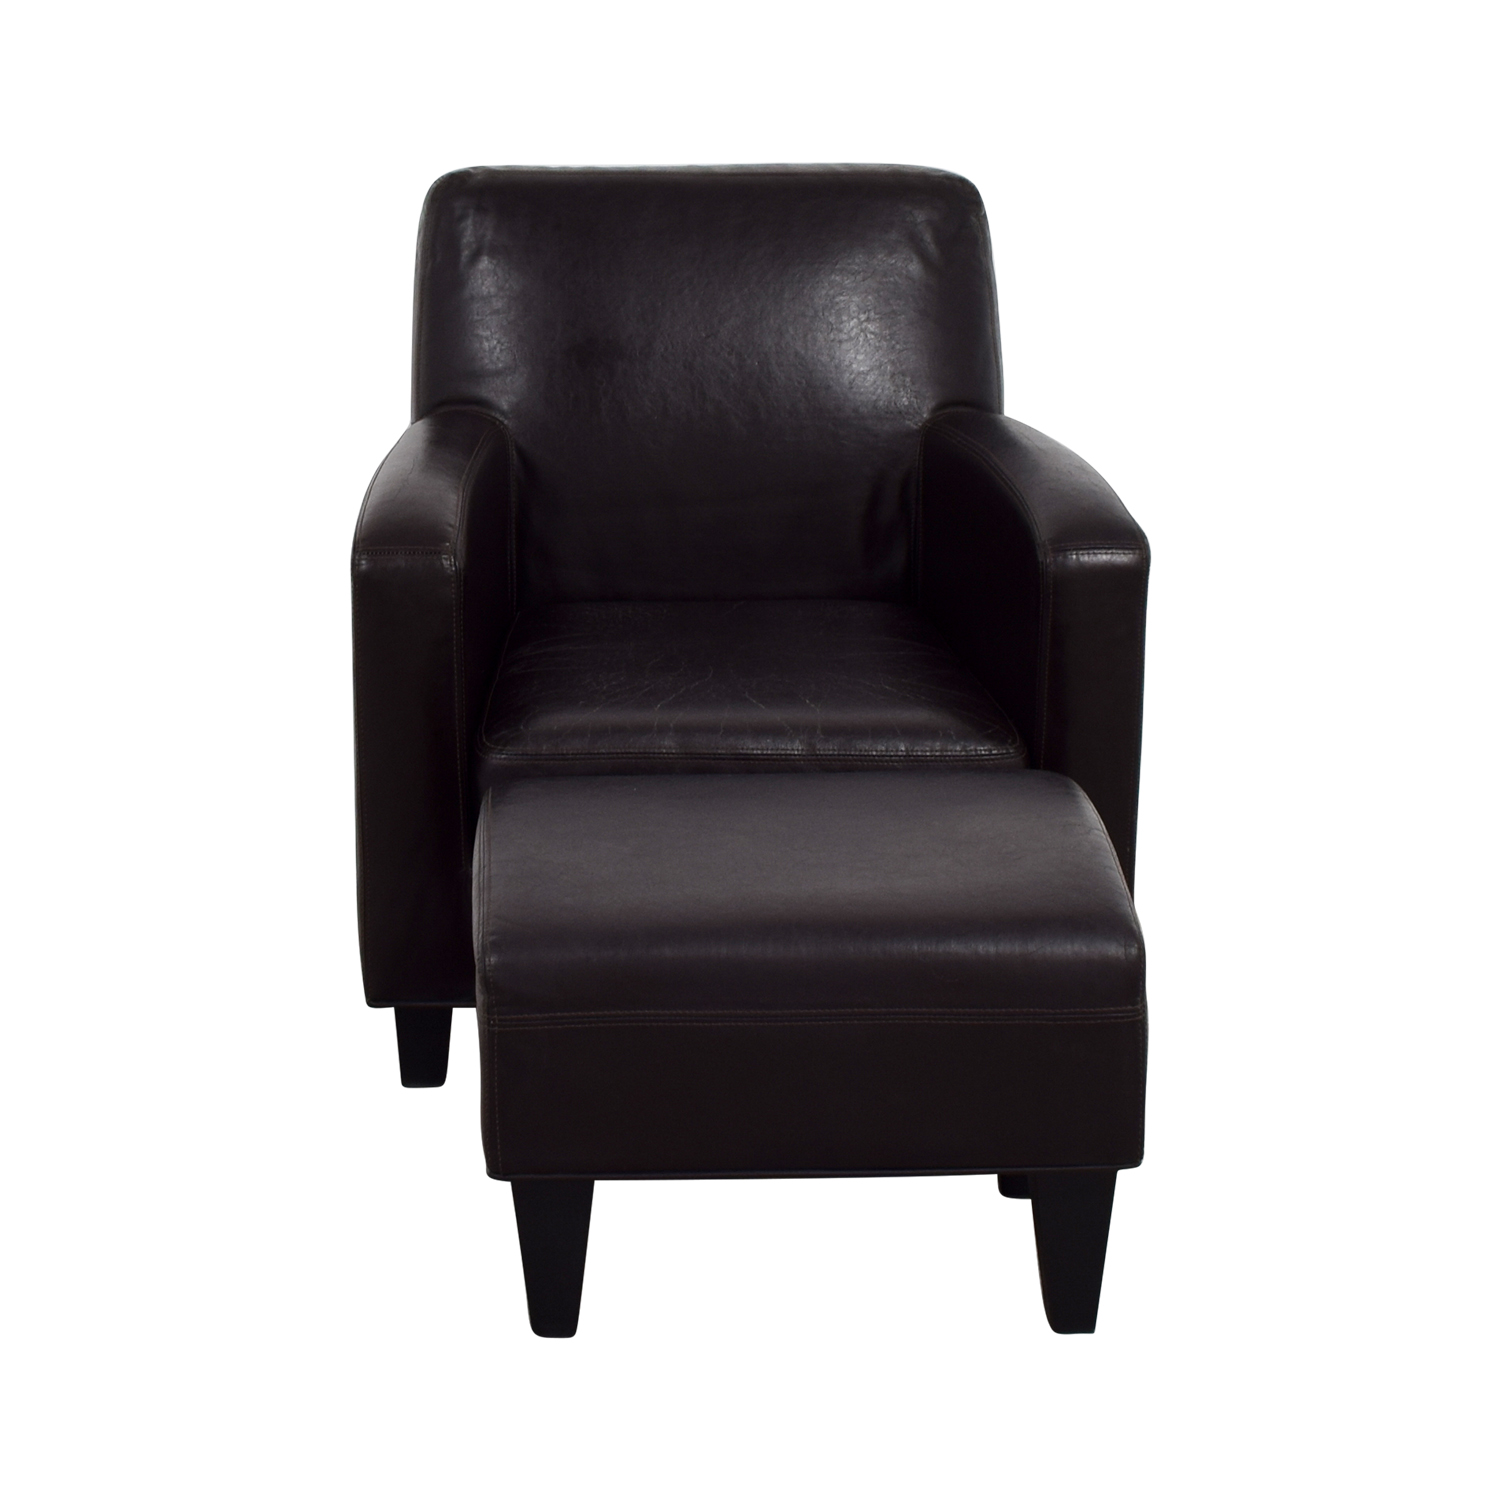 Leather Chair For Sale Caramel Leather Sofa Of Similar